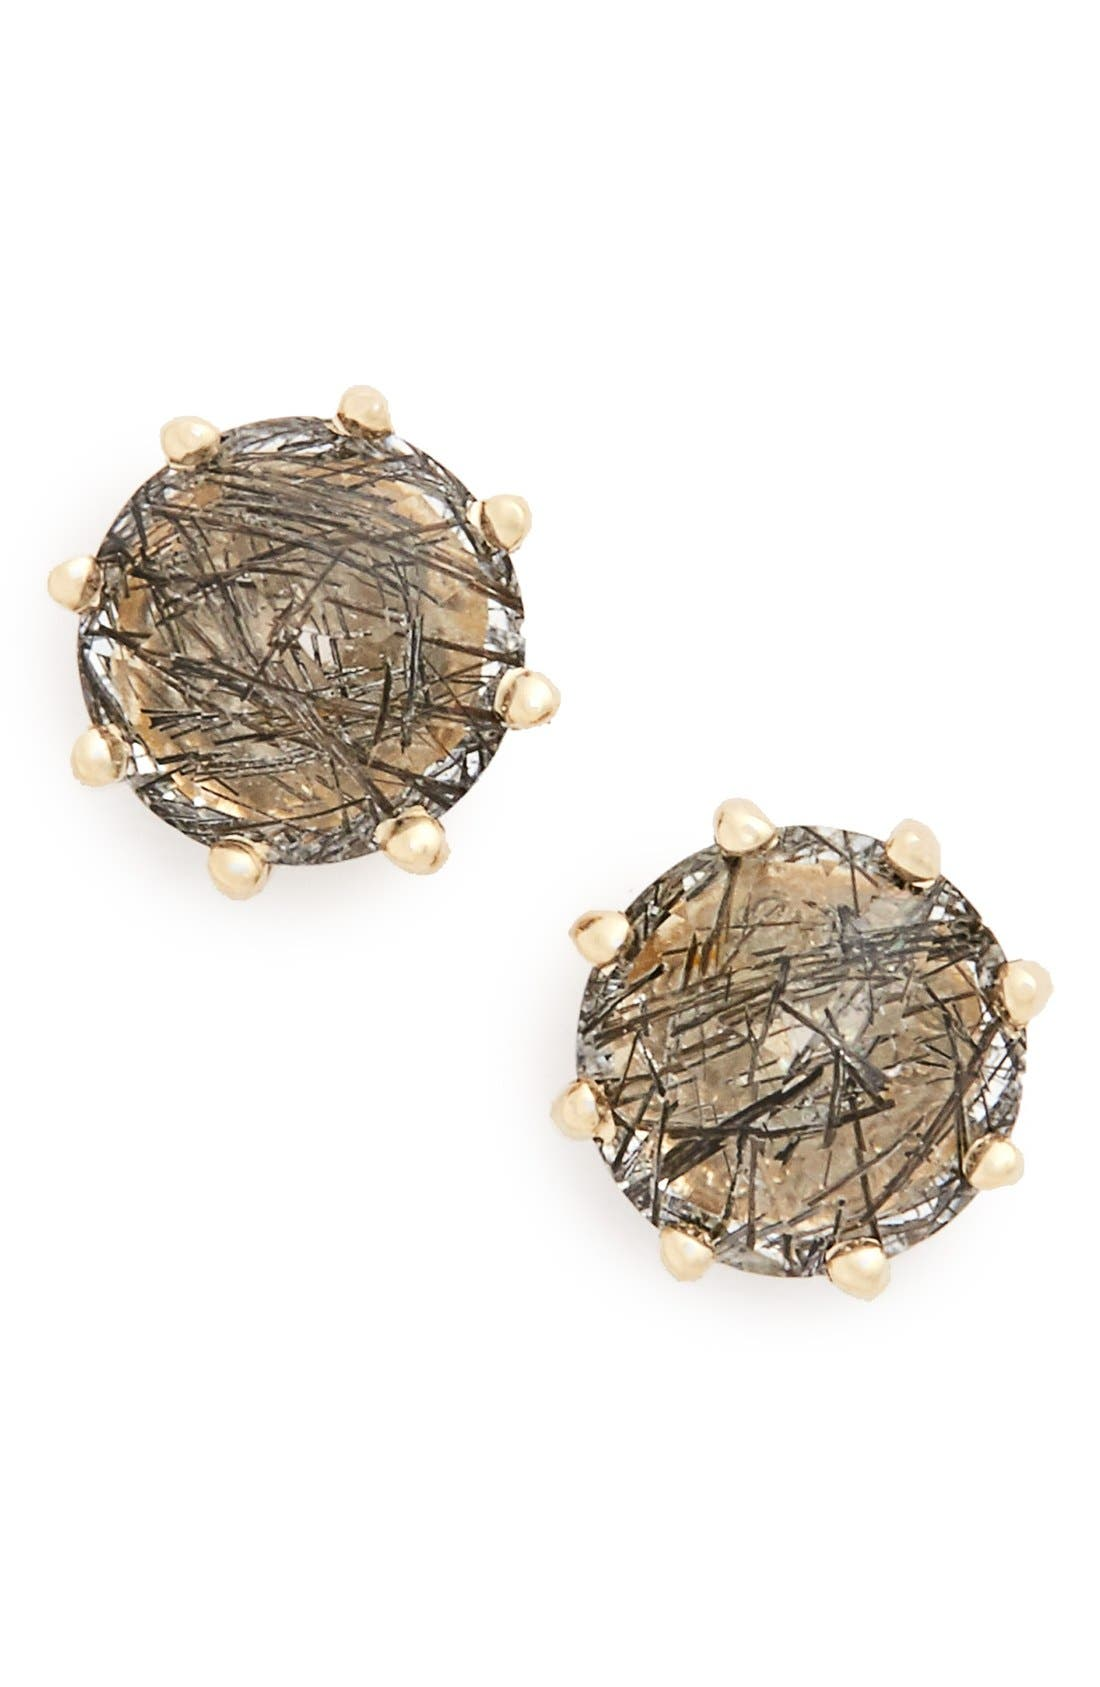 Anna Sheffield 'Eleanor' Black Rutilated Quartz Stud Earrings